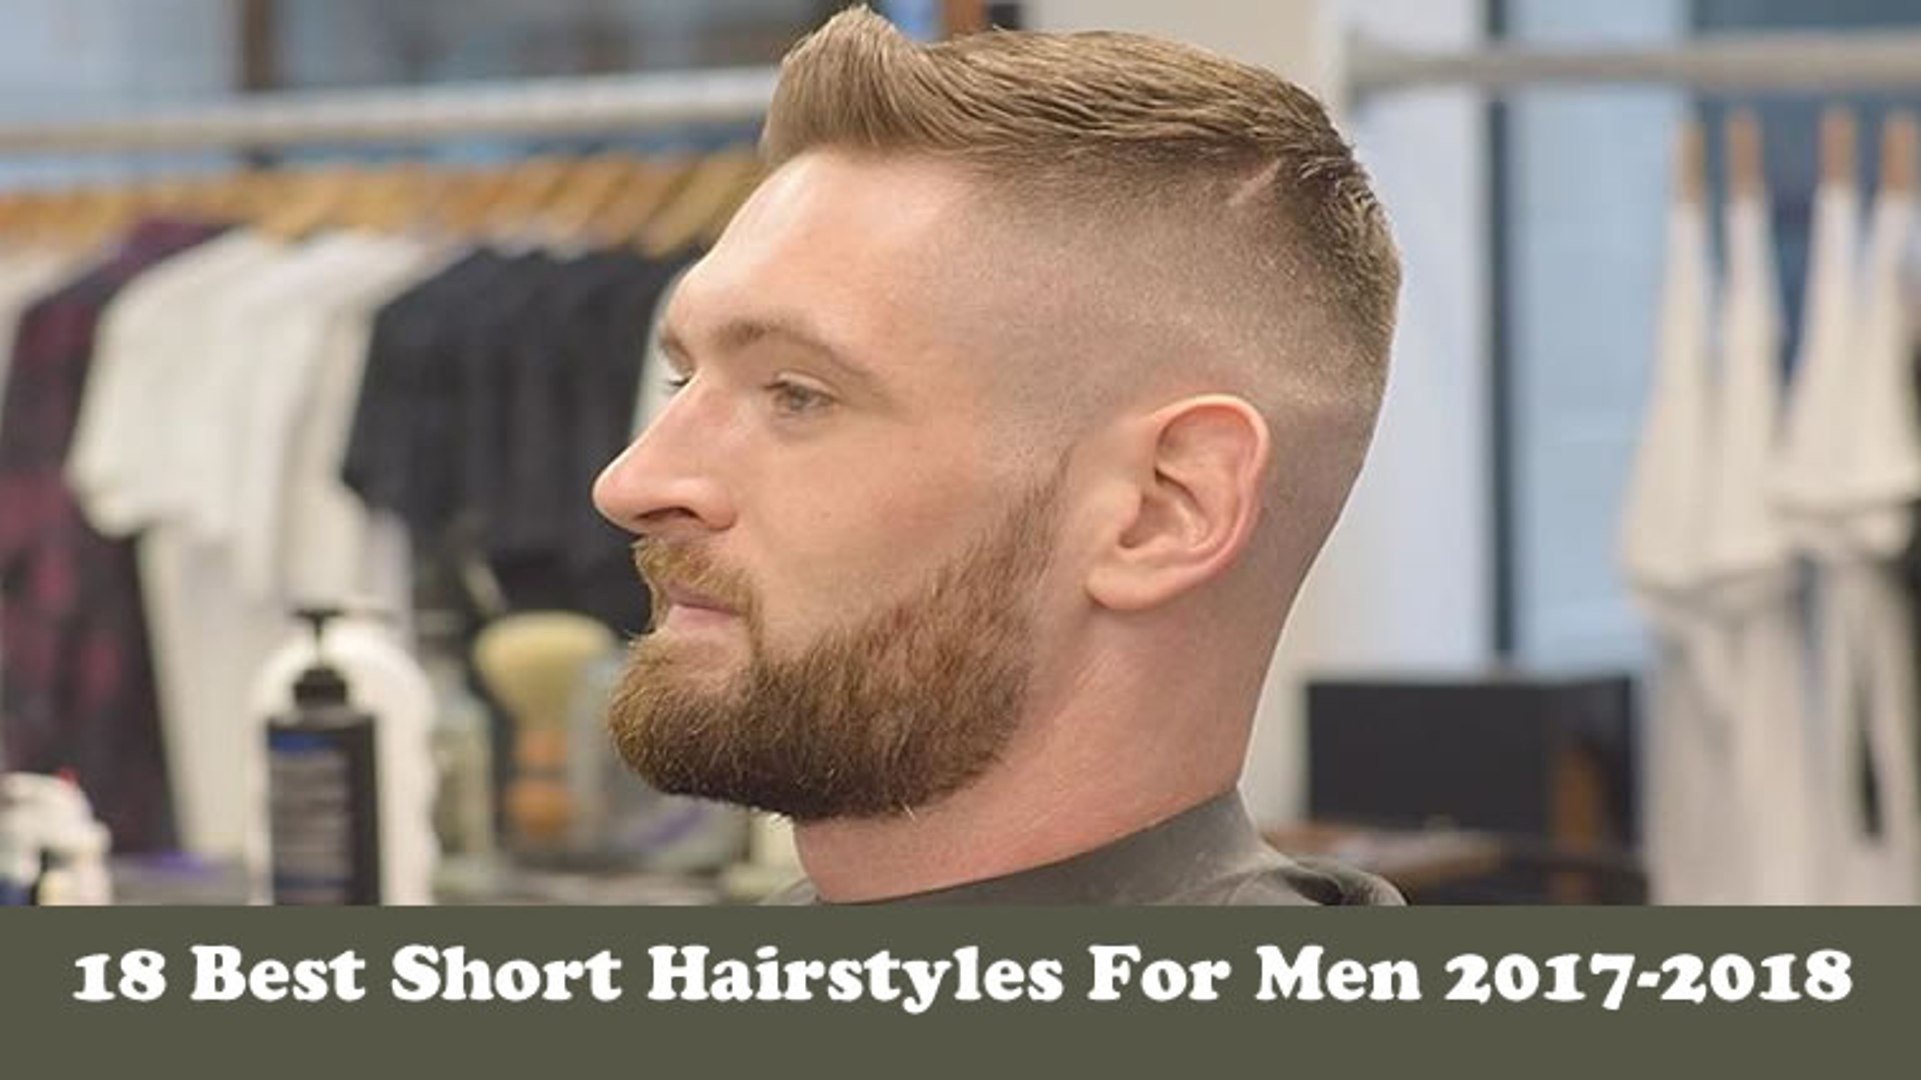 18 Best Short Hairstyles For Men 2017 2018 Dailymotion Video